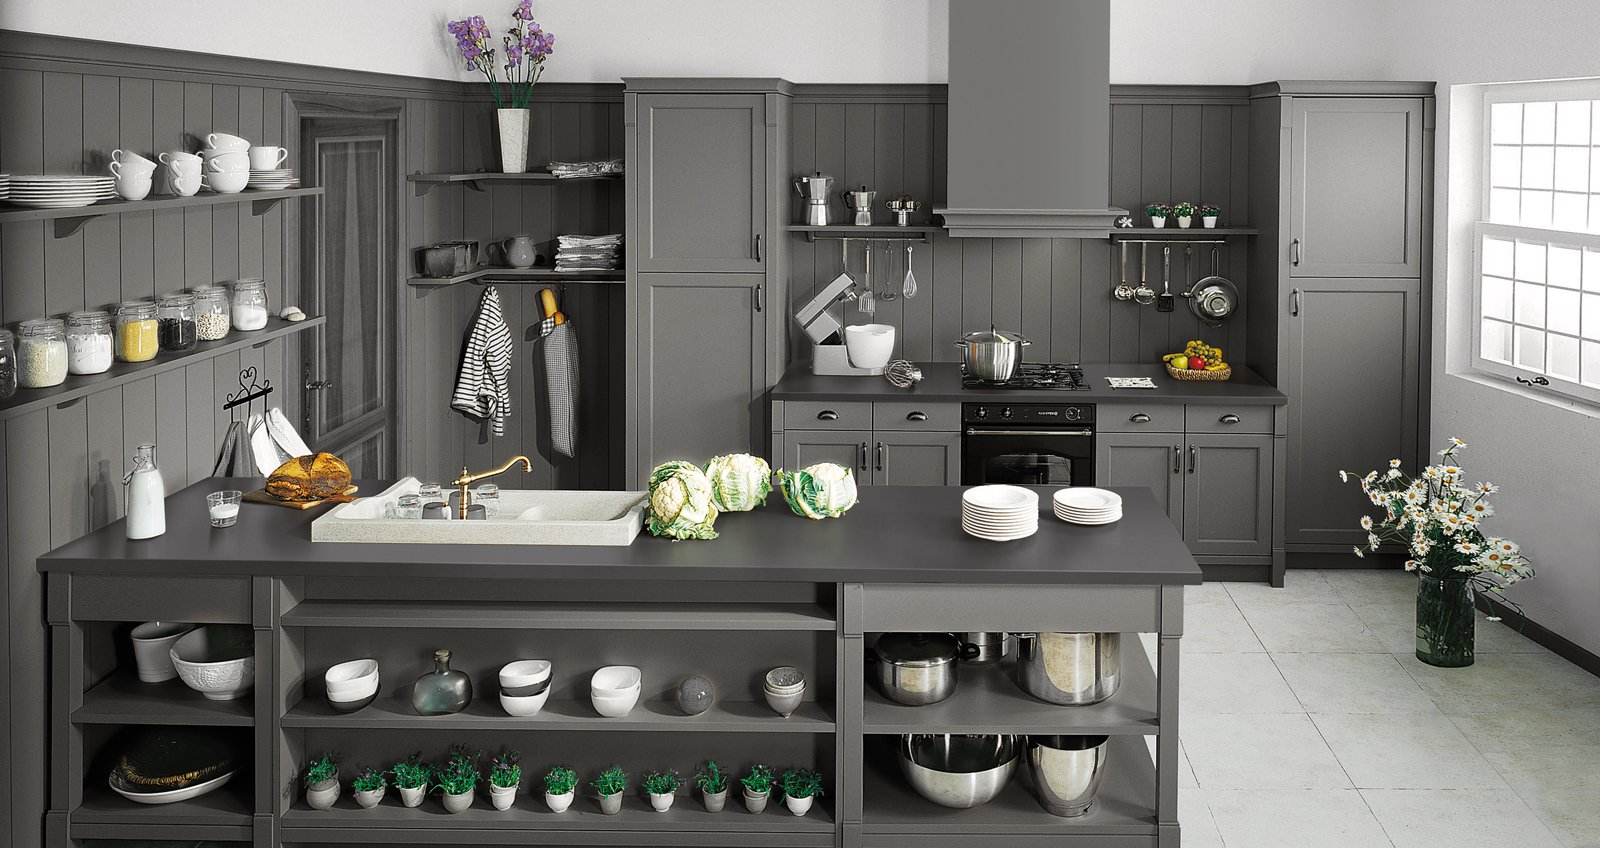 Good cucine stile country inglese cucina in stile country - Cucina in inglese ...